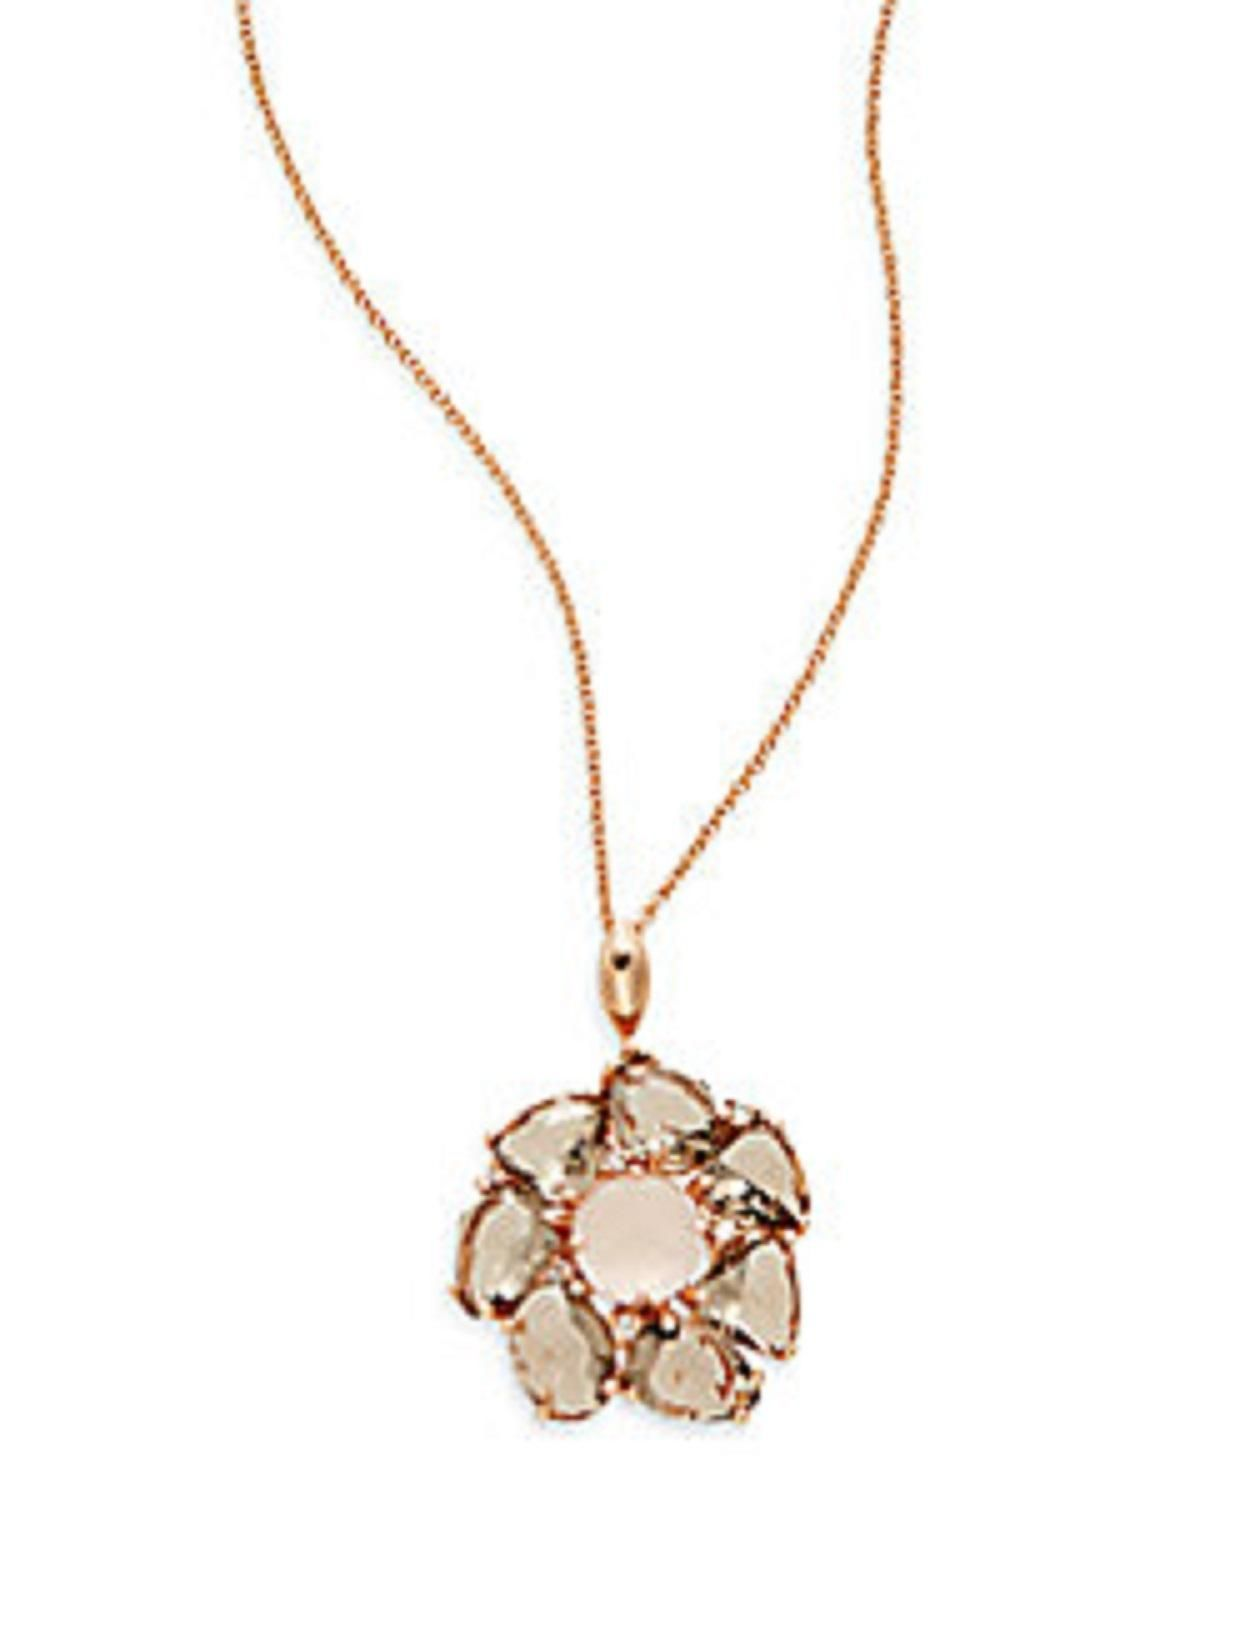 claire pendant rose s us large gold flower wire necklace